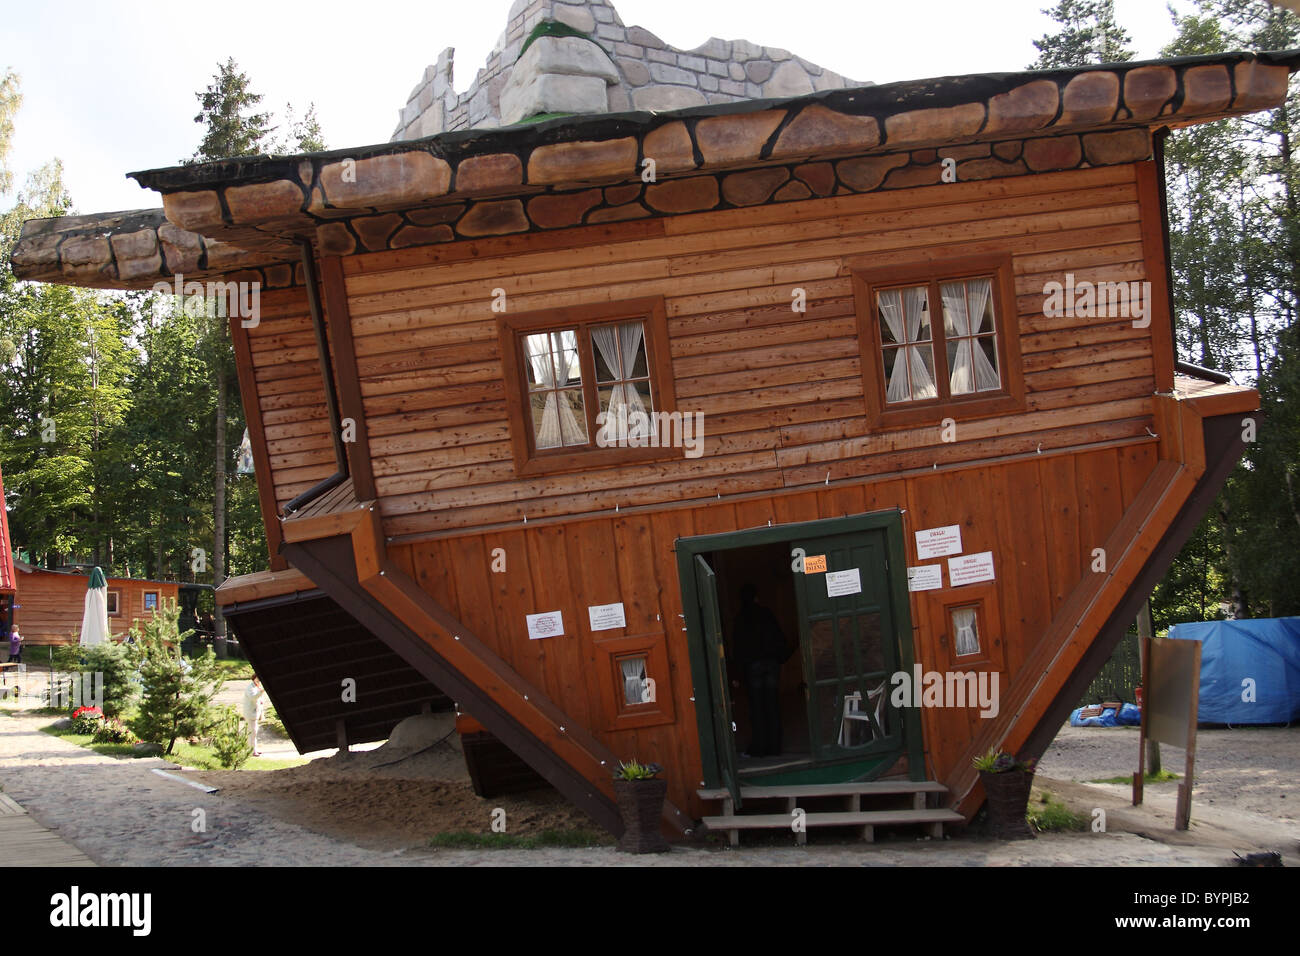 Upside Down House In Open Air Museum In Szymbark Kashubia